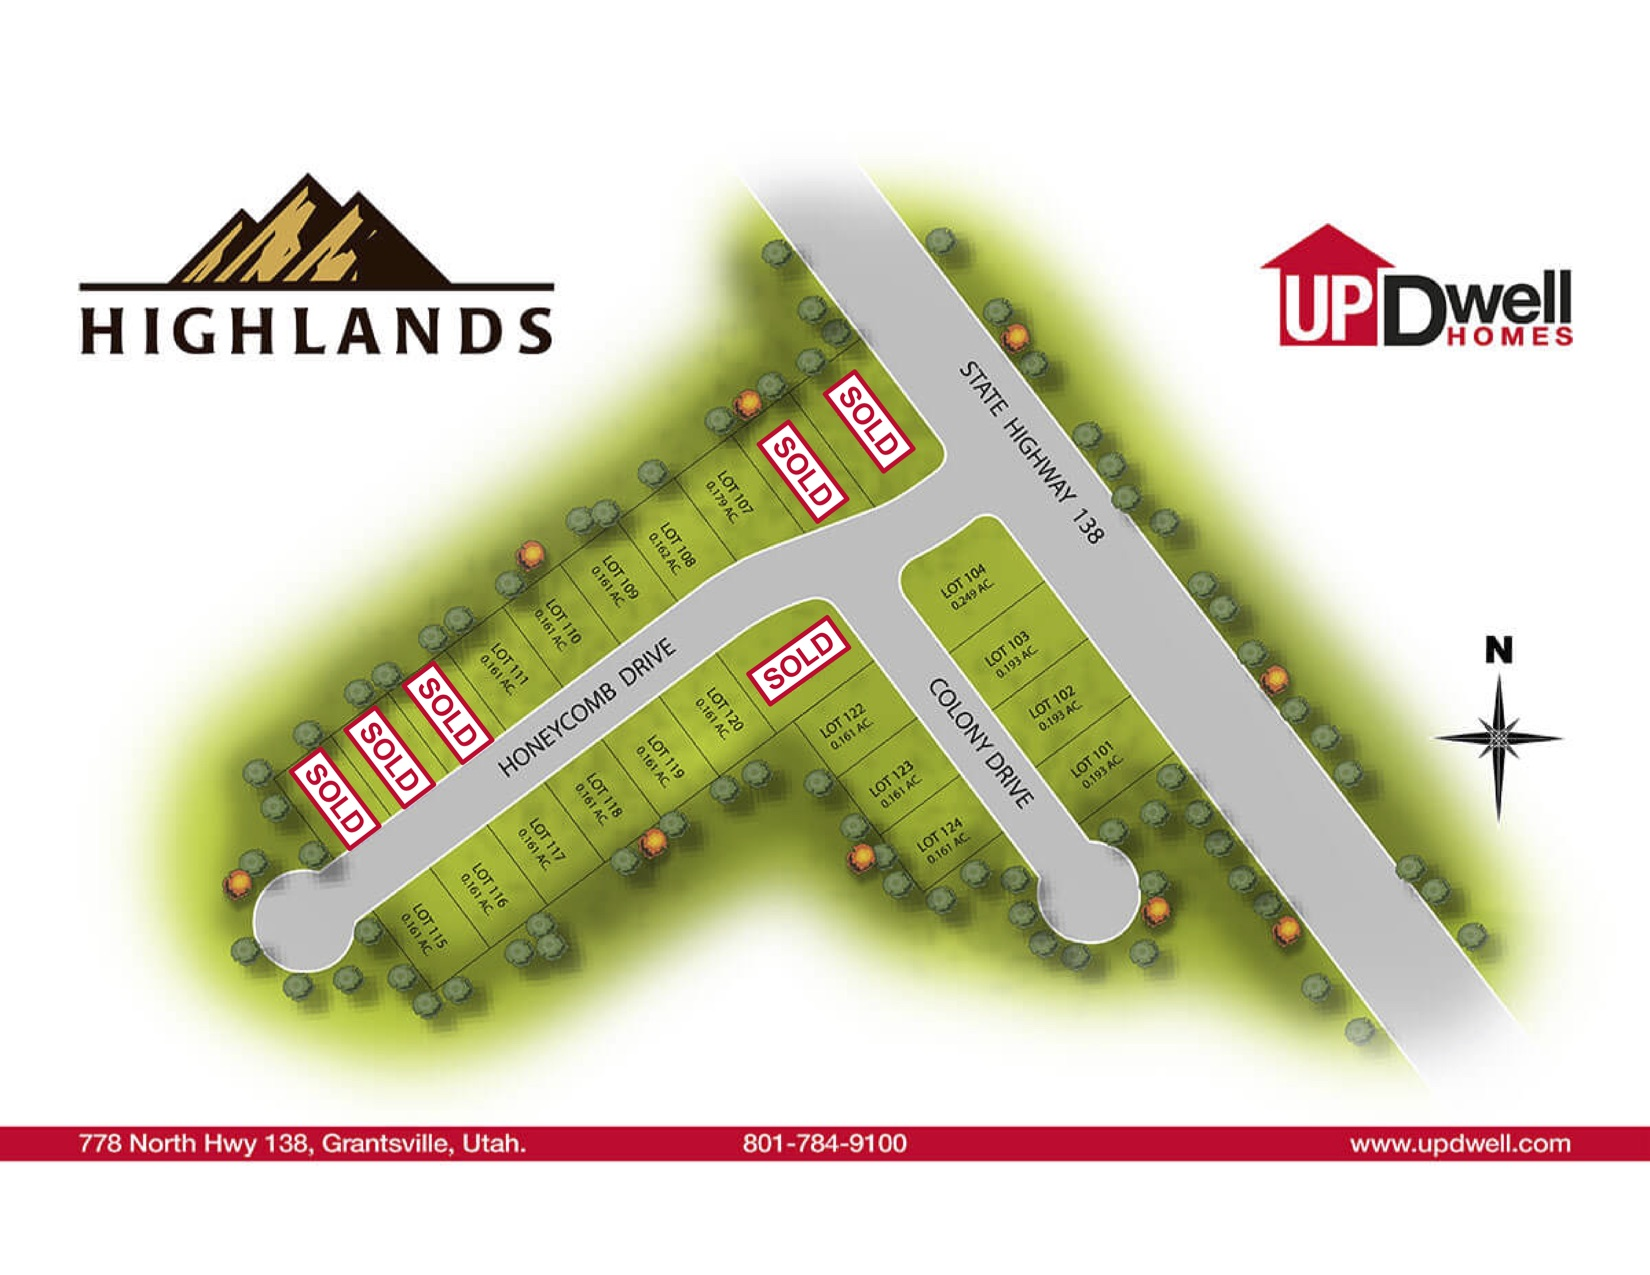 Highlands community in grantsville ut